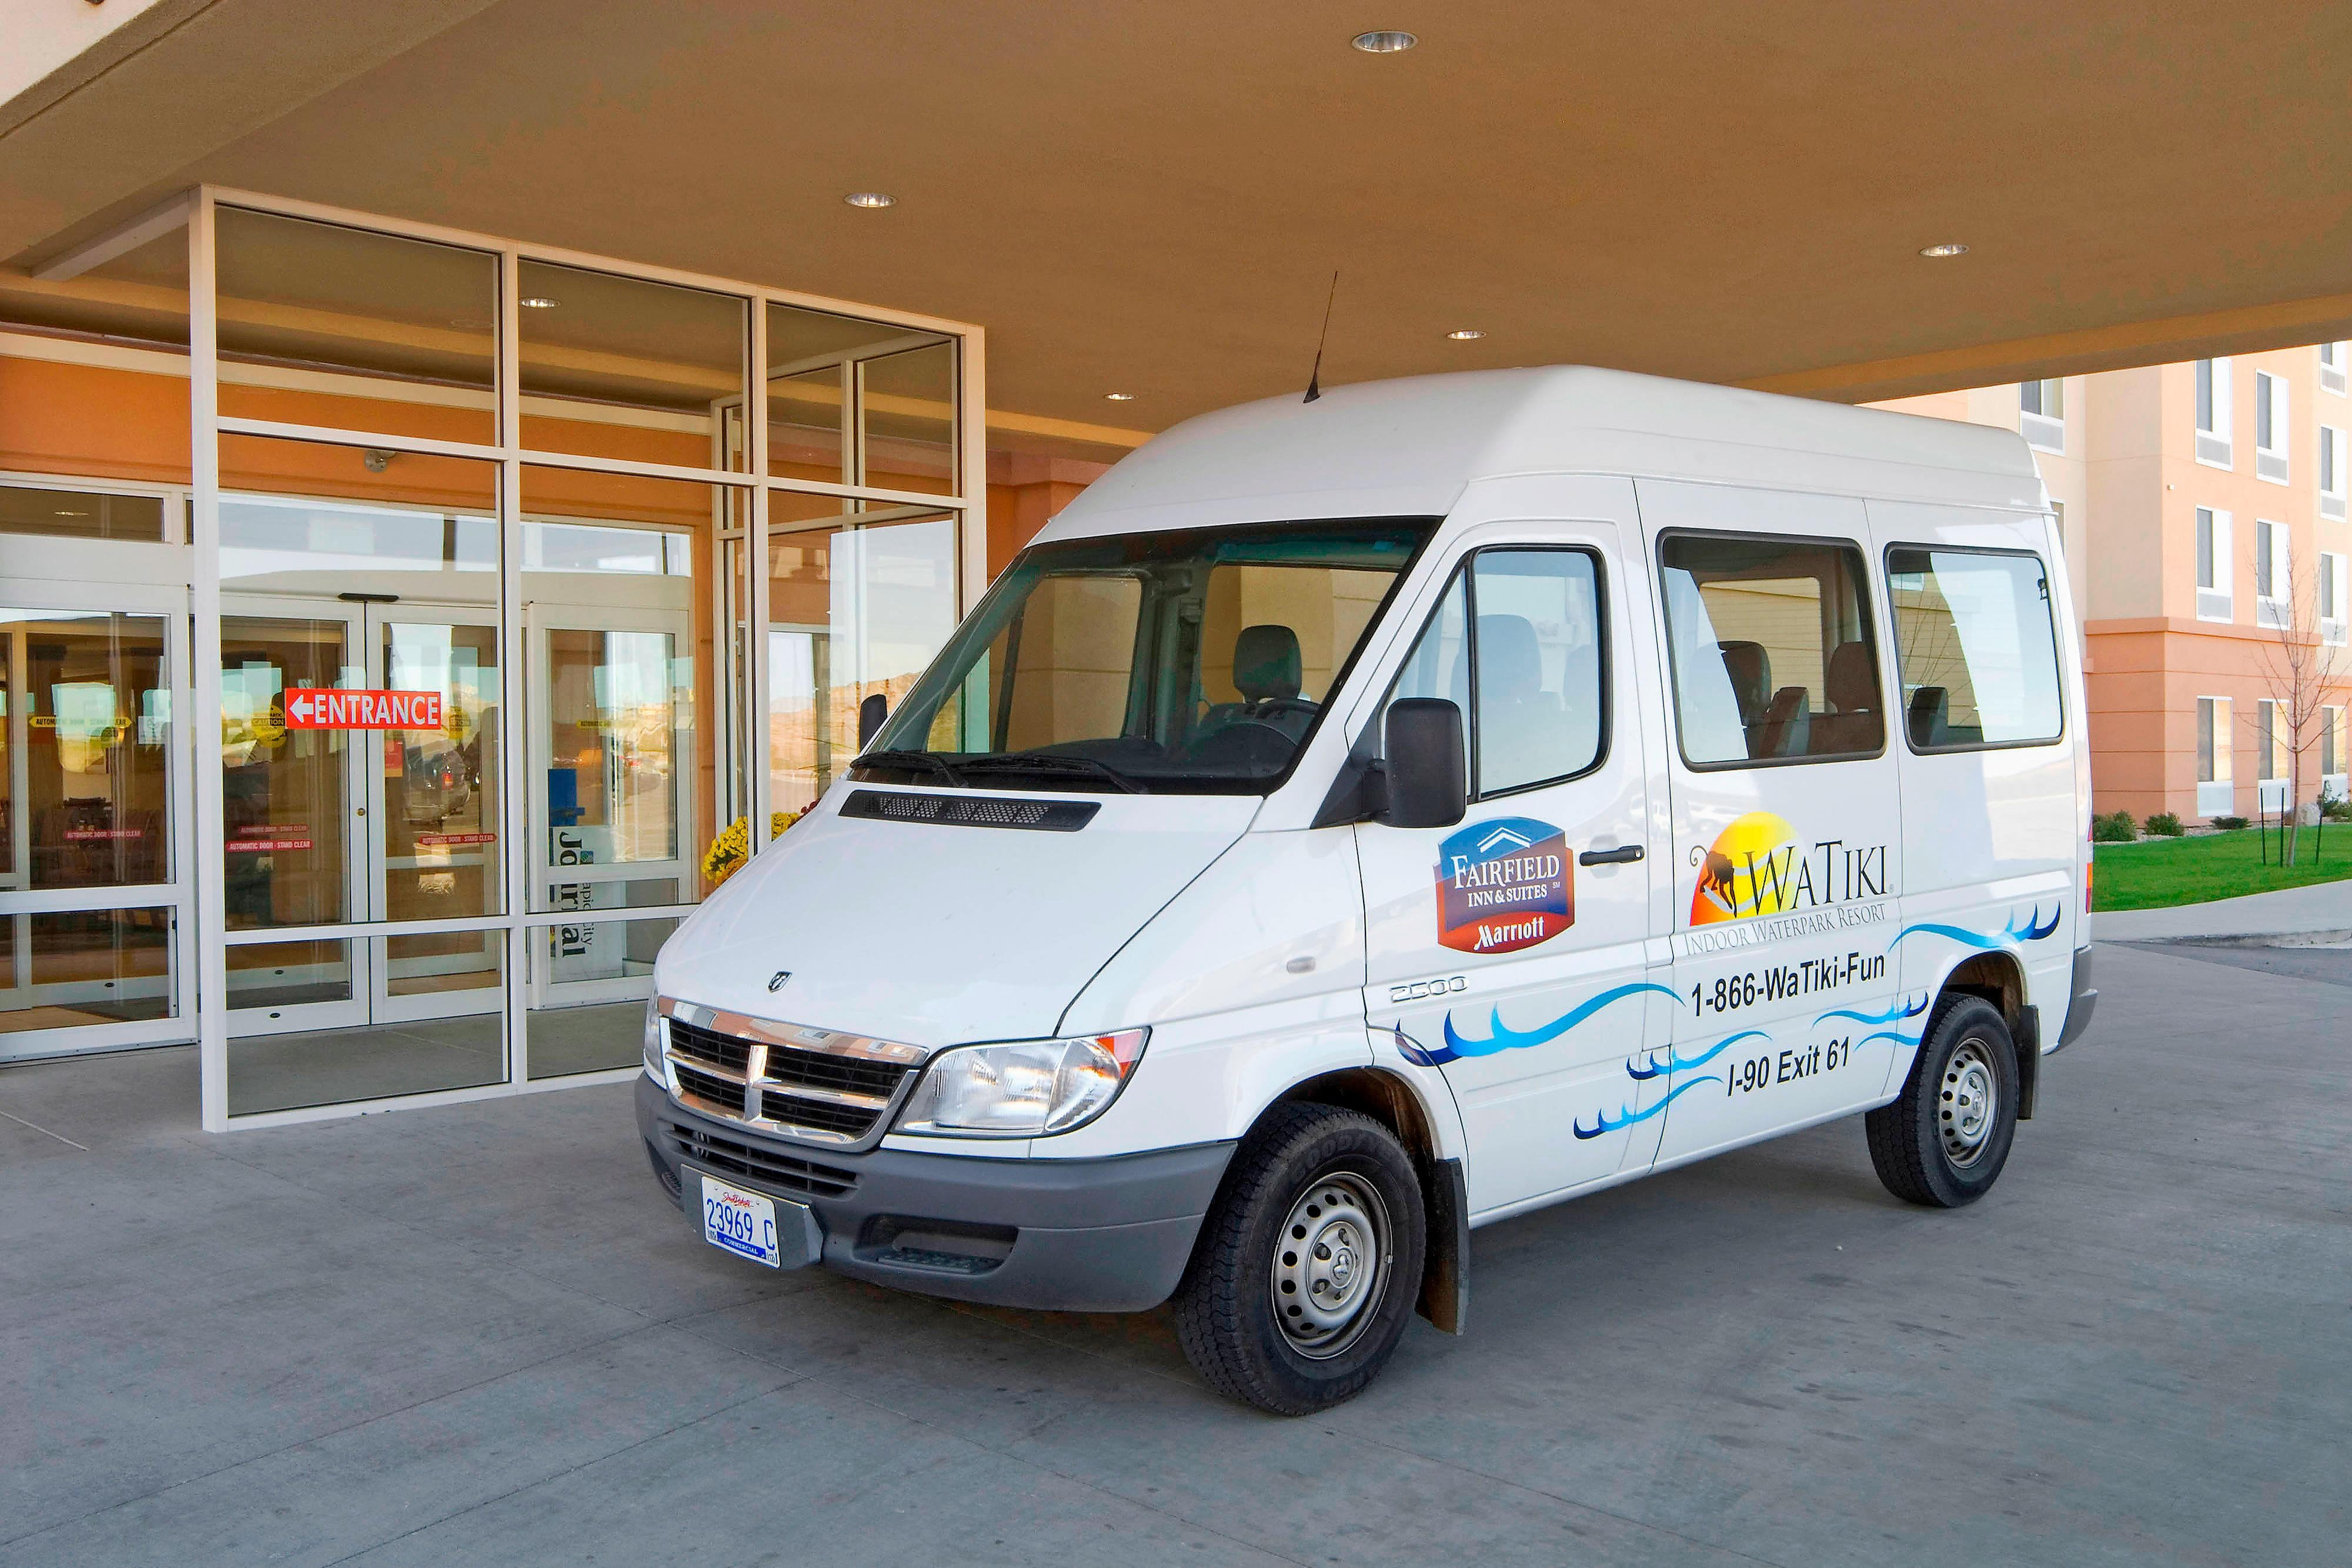 Airport Shuttle Service